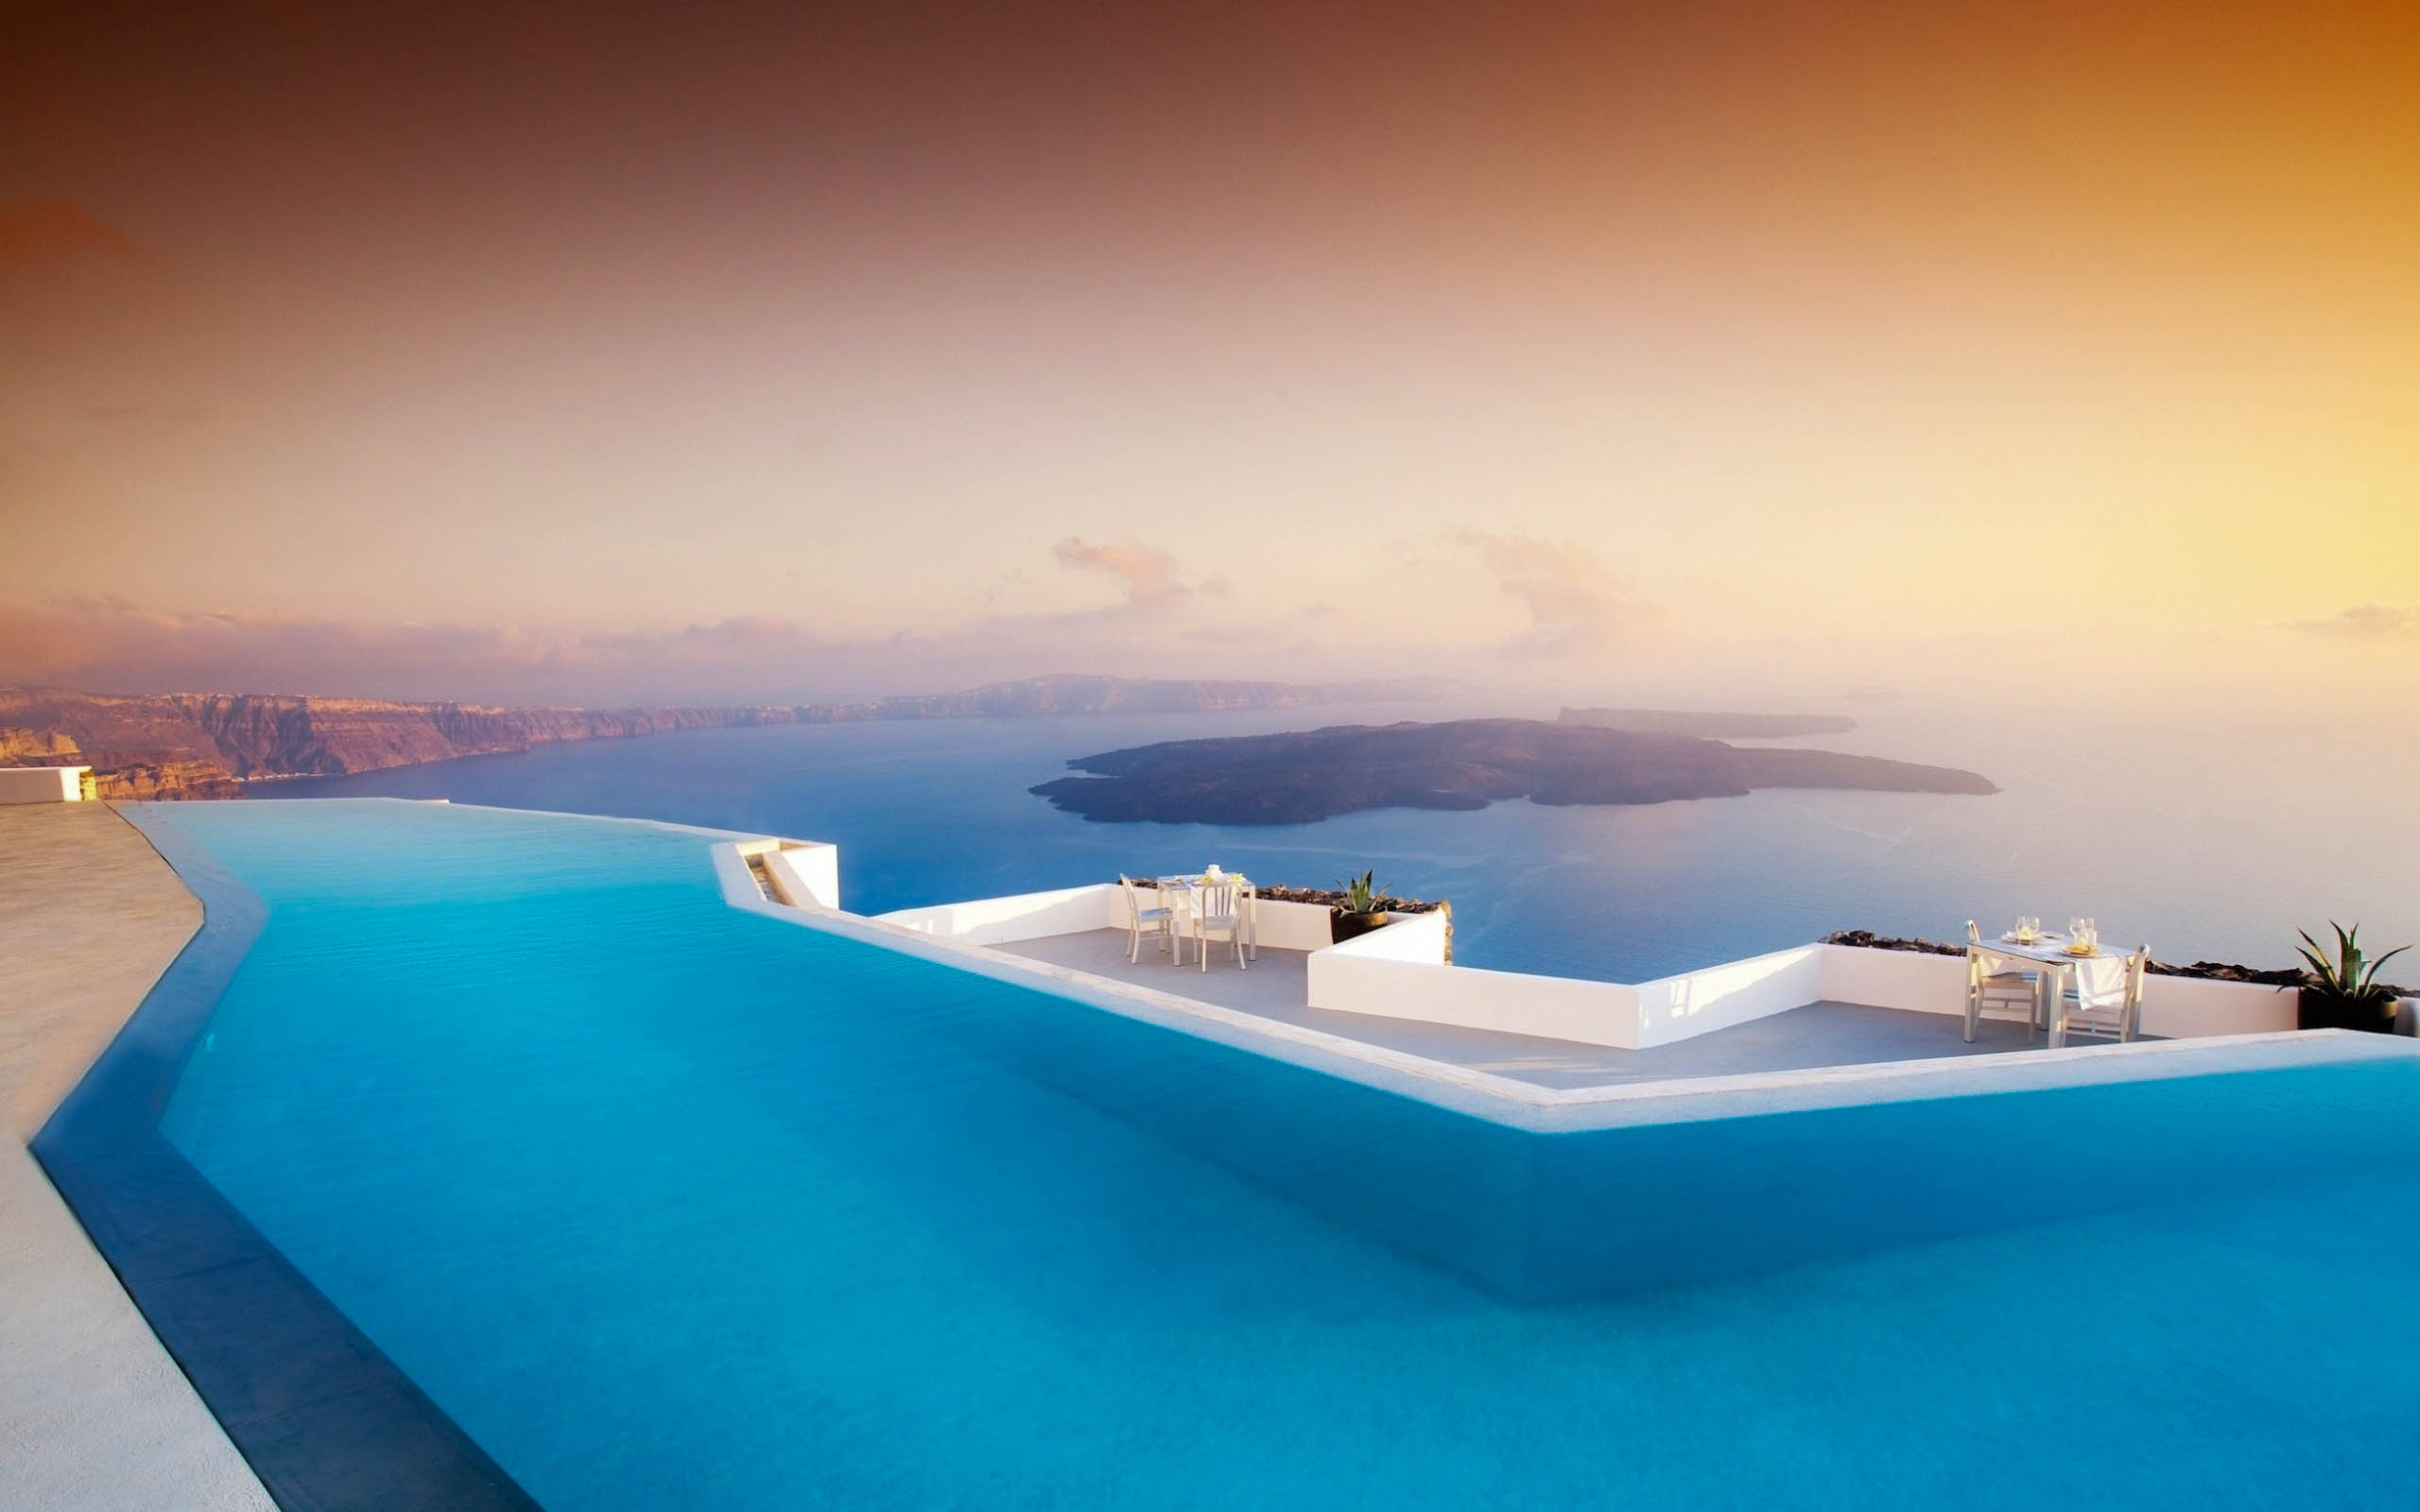 Santorini amazing hd wallpapers high resolution all hd for Amazing wallpaper for tab